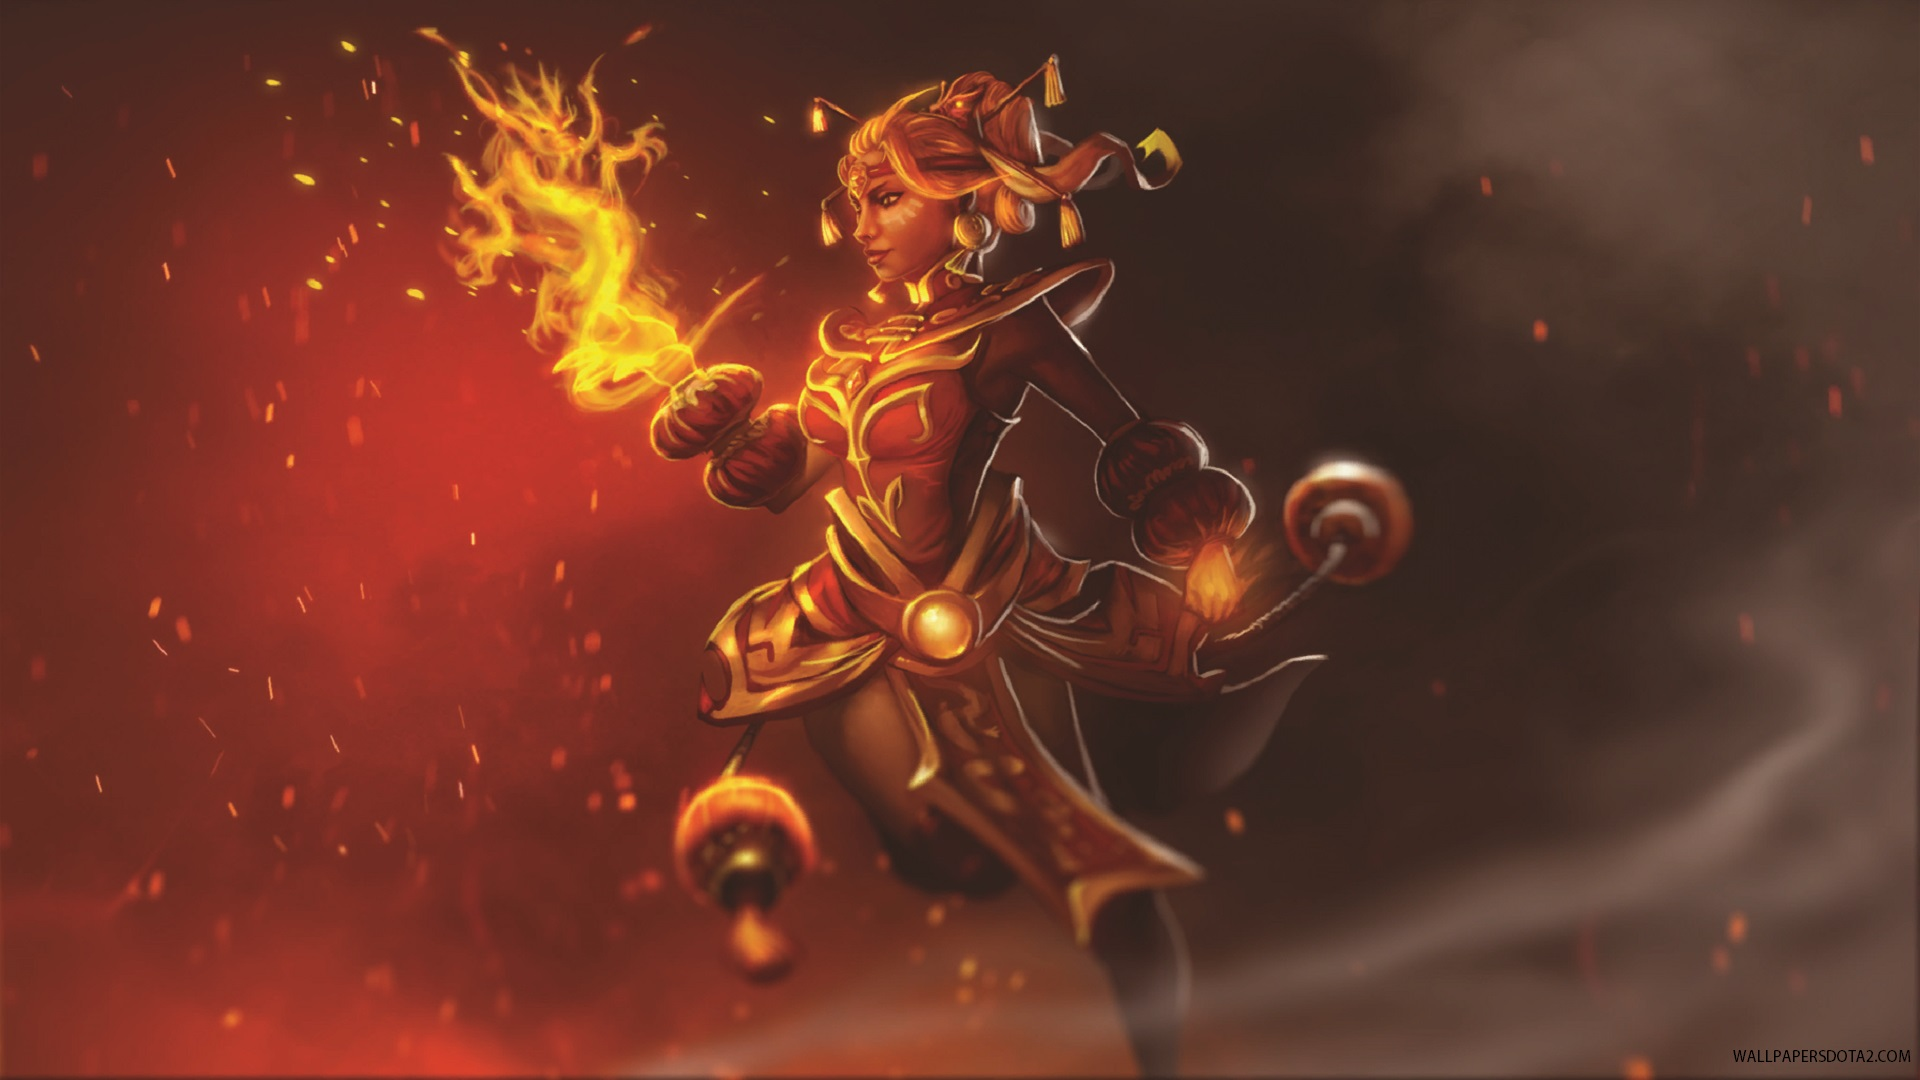 Lina Dragonfire set backgrounds for pc laptops Dota 2 Wallpapers 1920x1080